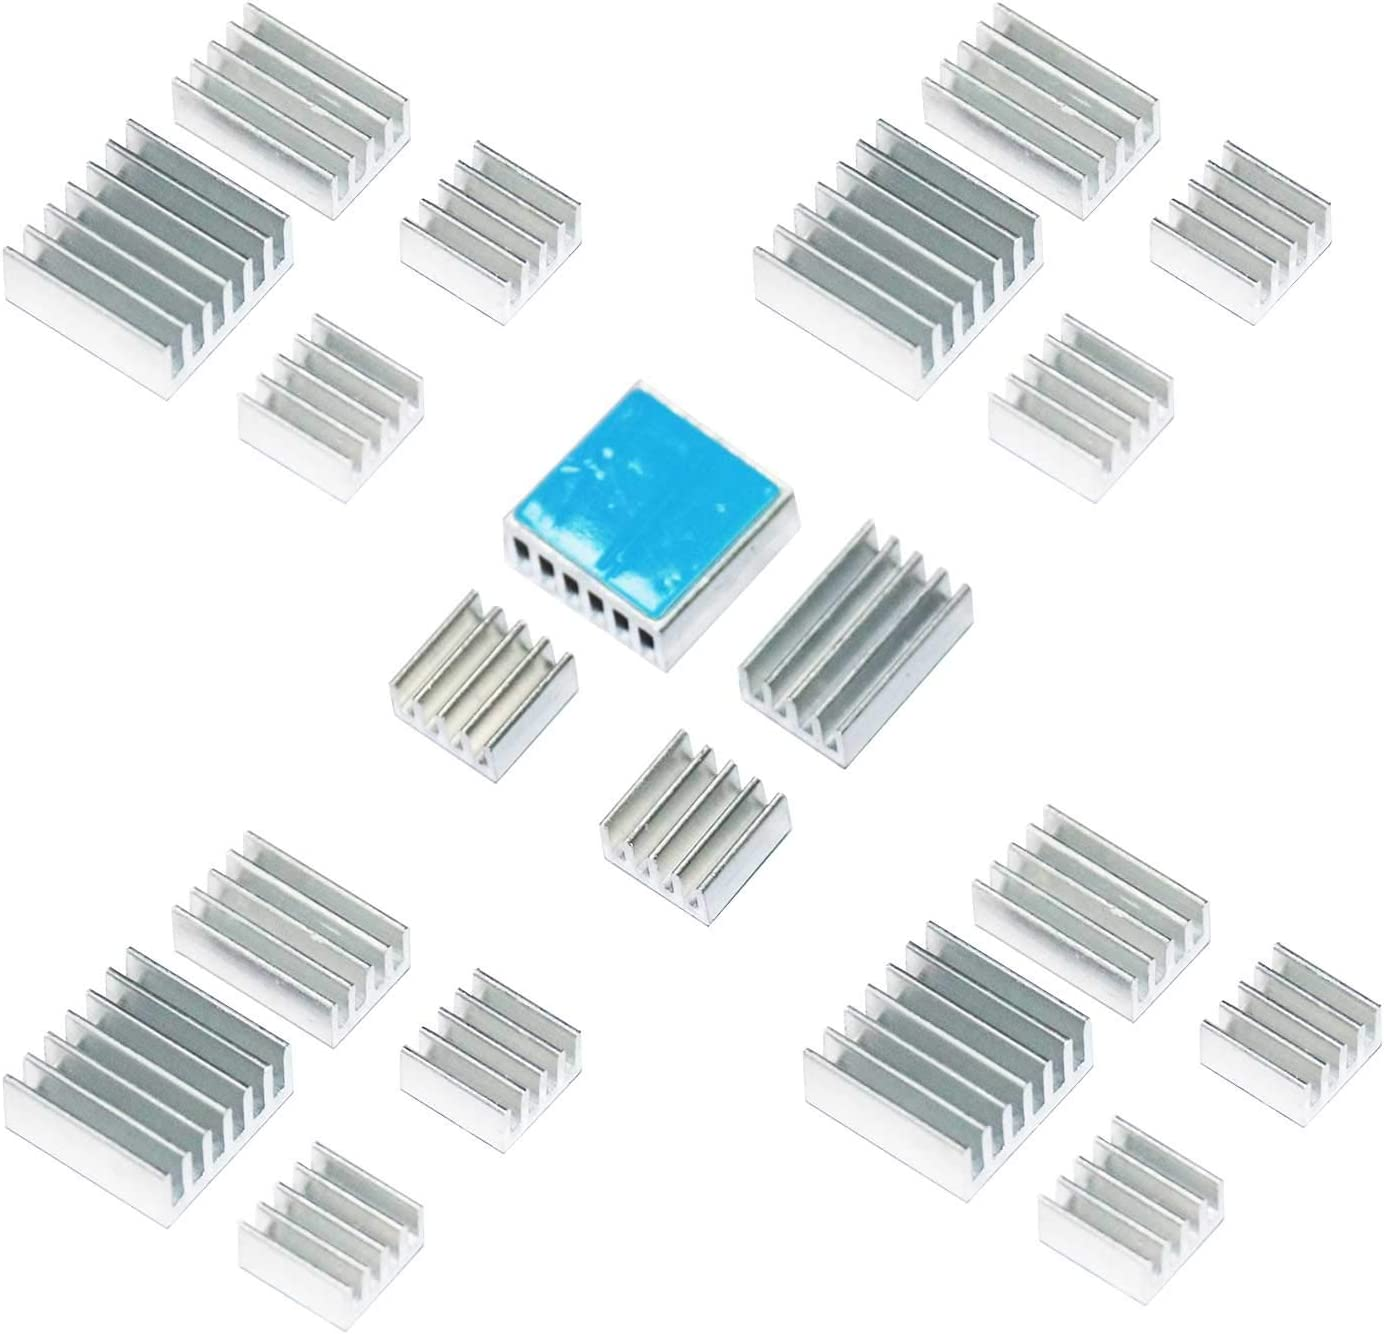 10 Set Heat Sink CPU Cooler PCB Power Board Radiator Aluminum with Adhesive for Raspberry Pi 2//3//4